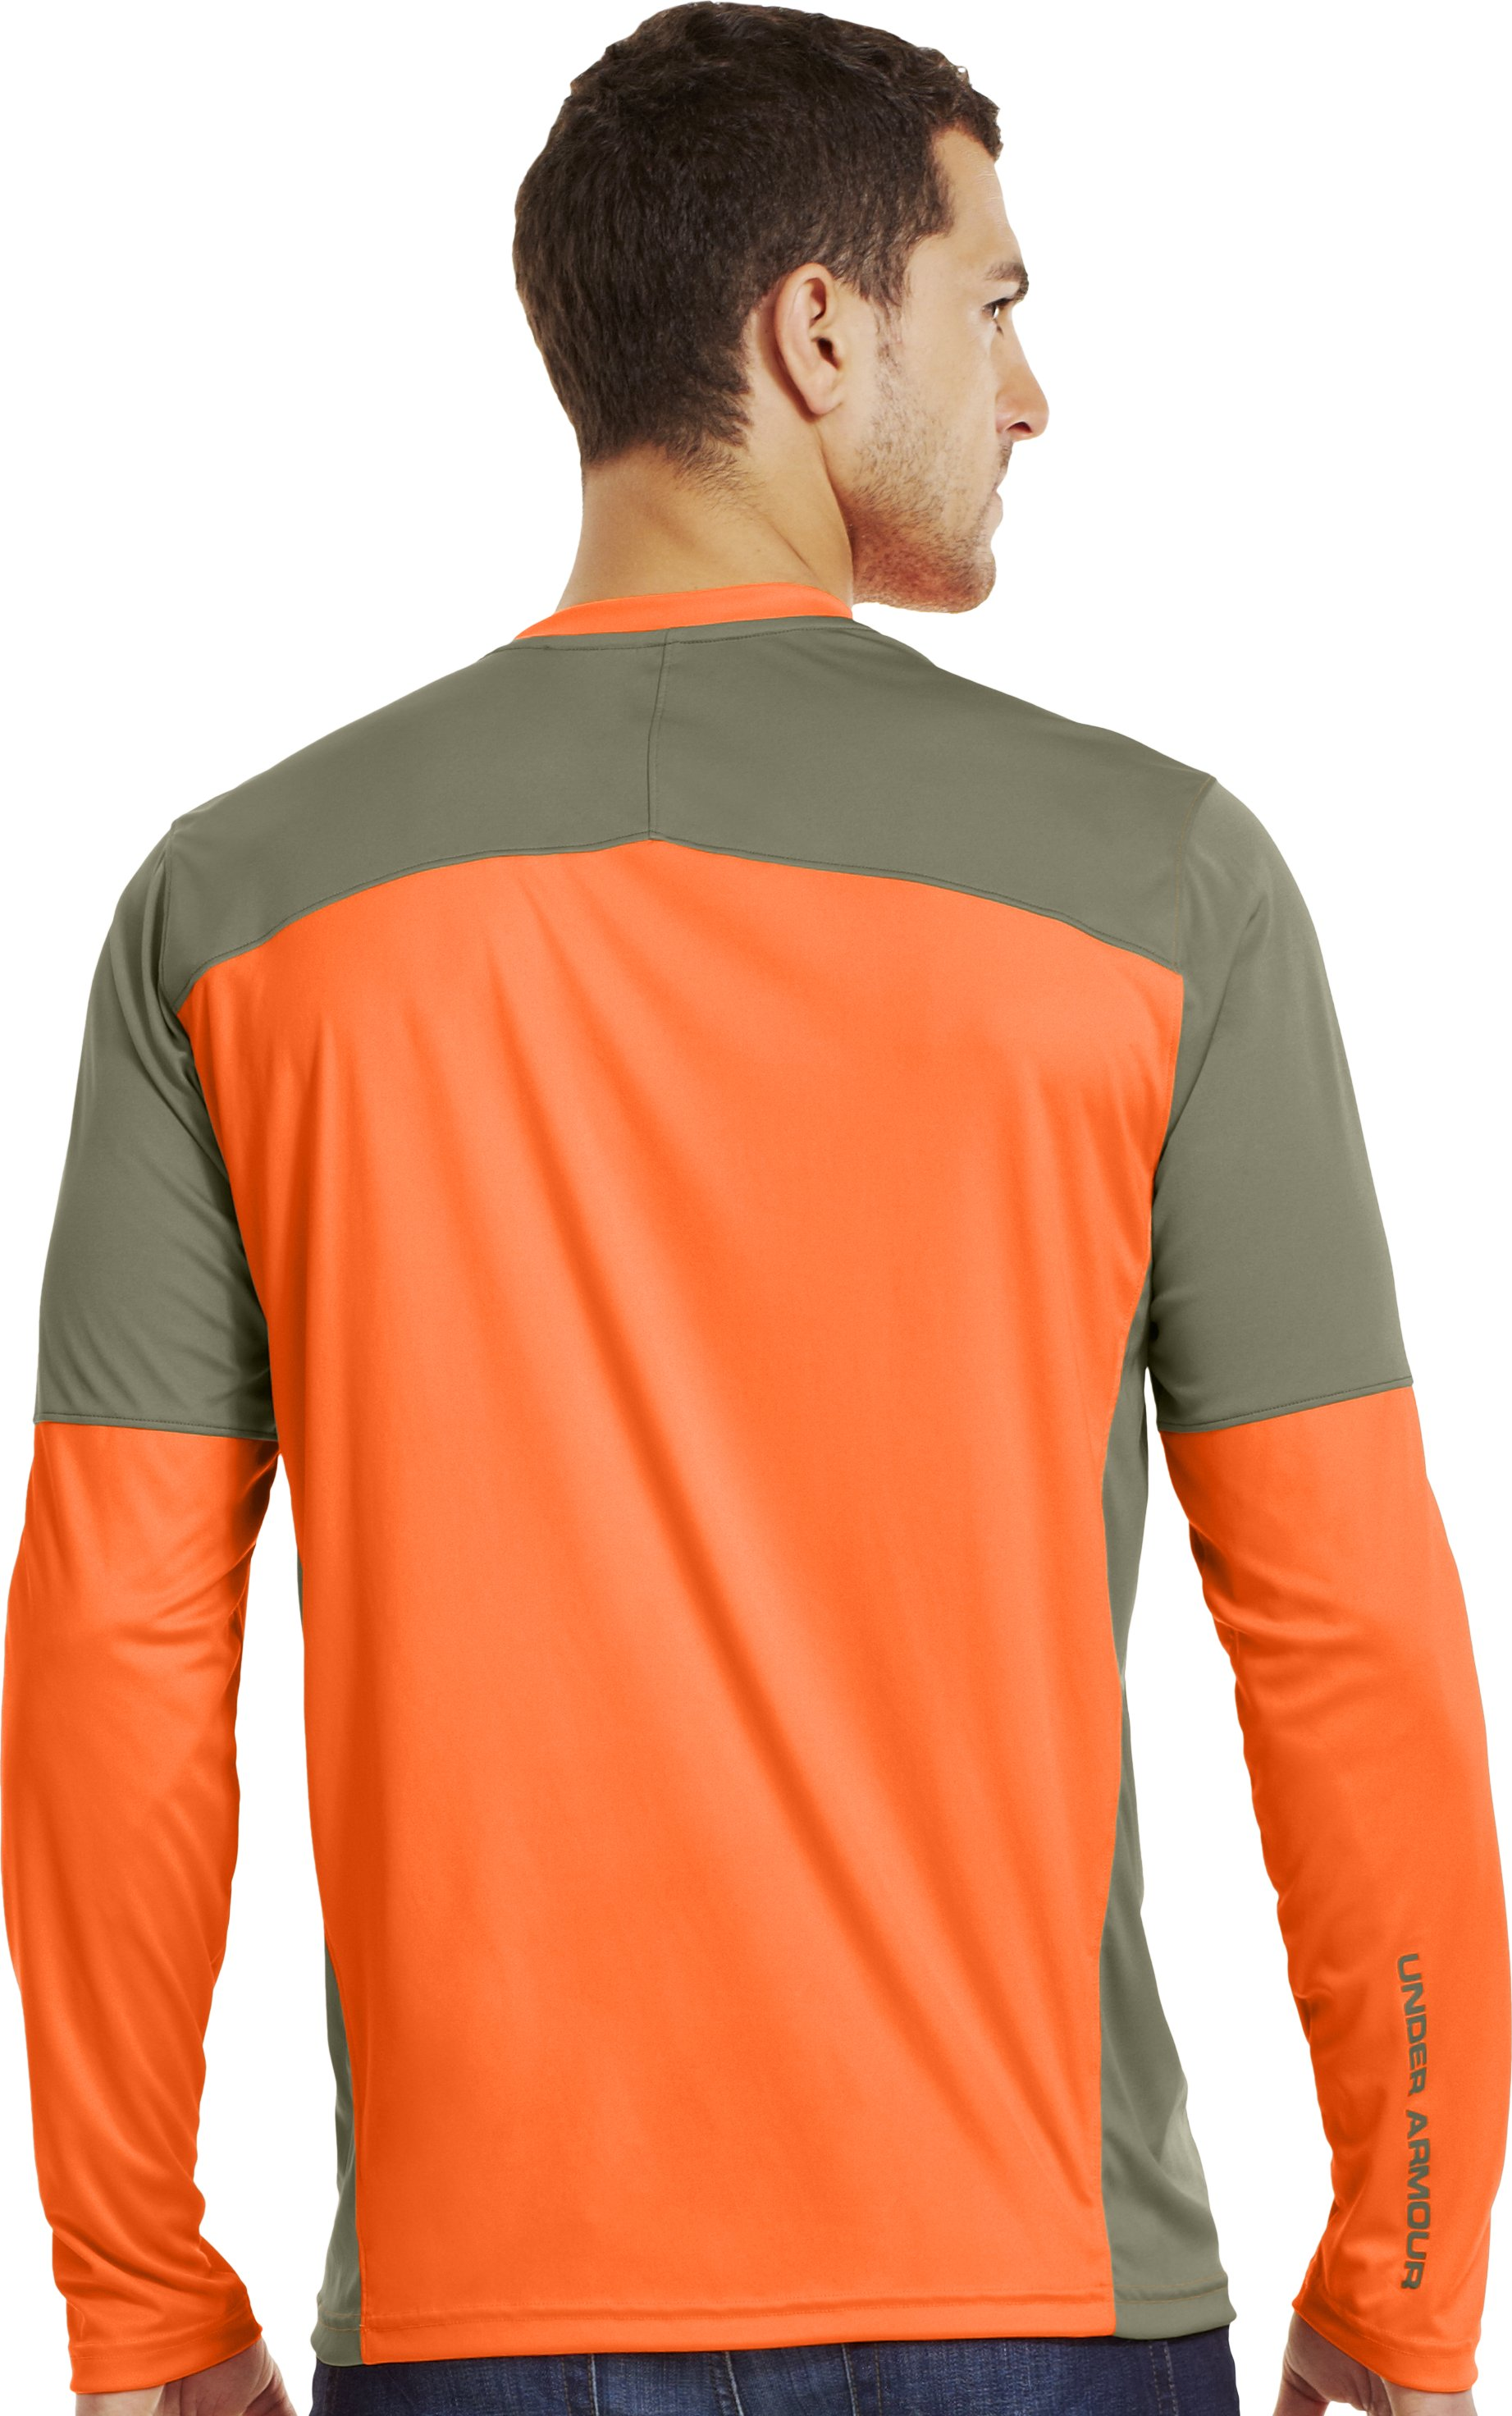 Men's Wylie Long Sleeve Hunting Shirt, Blaze Orange, Back